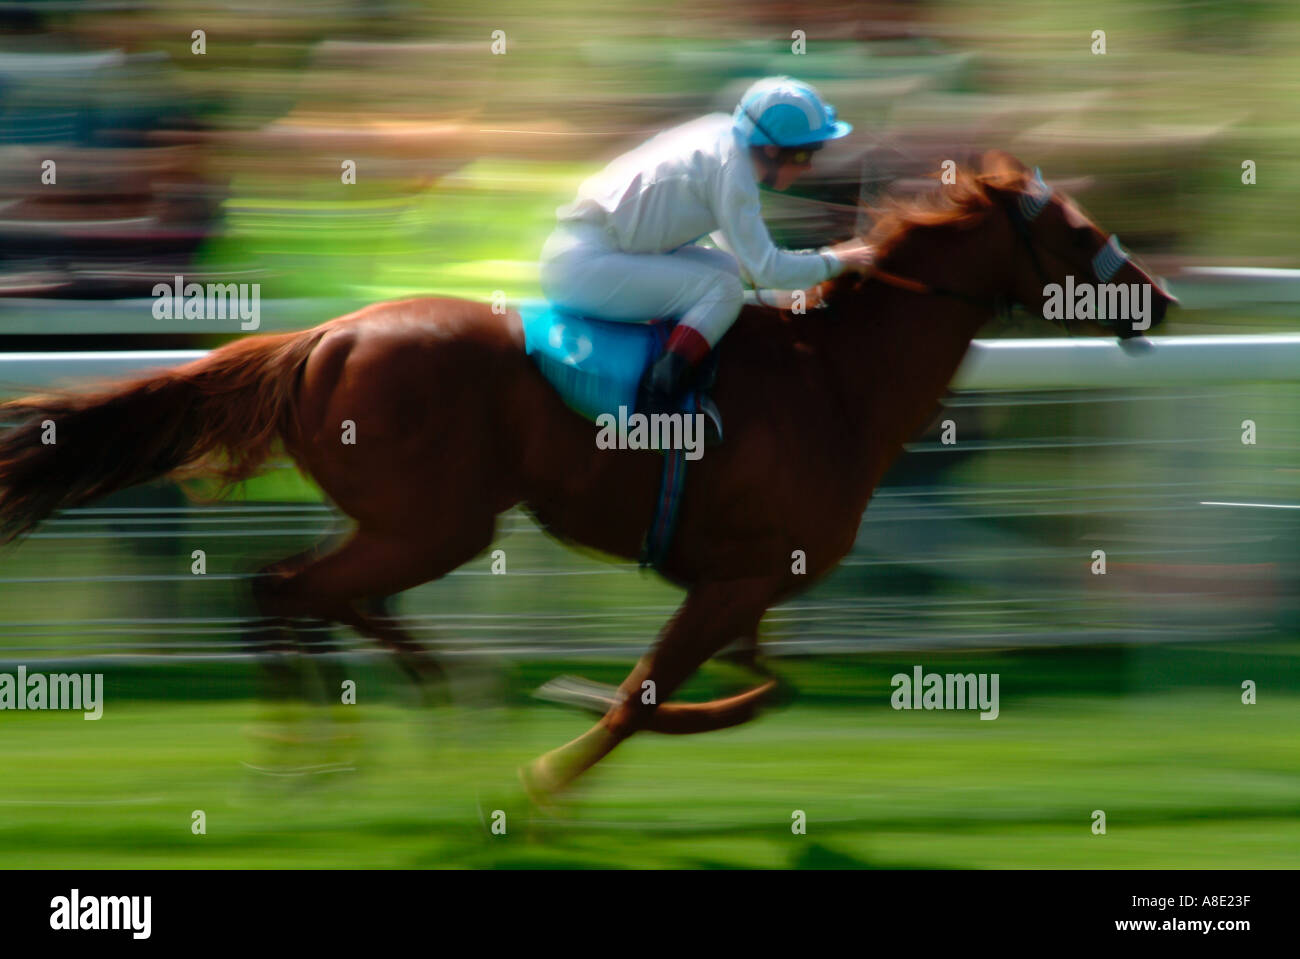 Horse racing at Chester Races Cheshire England UK - Stock Image